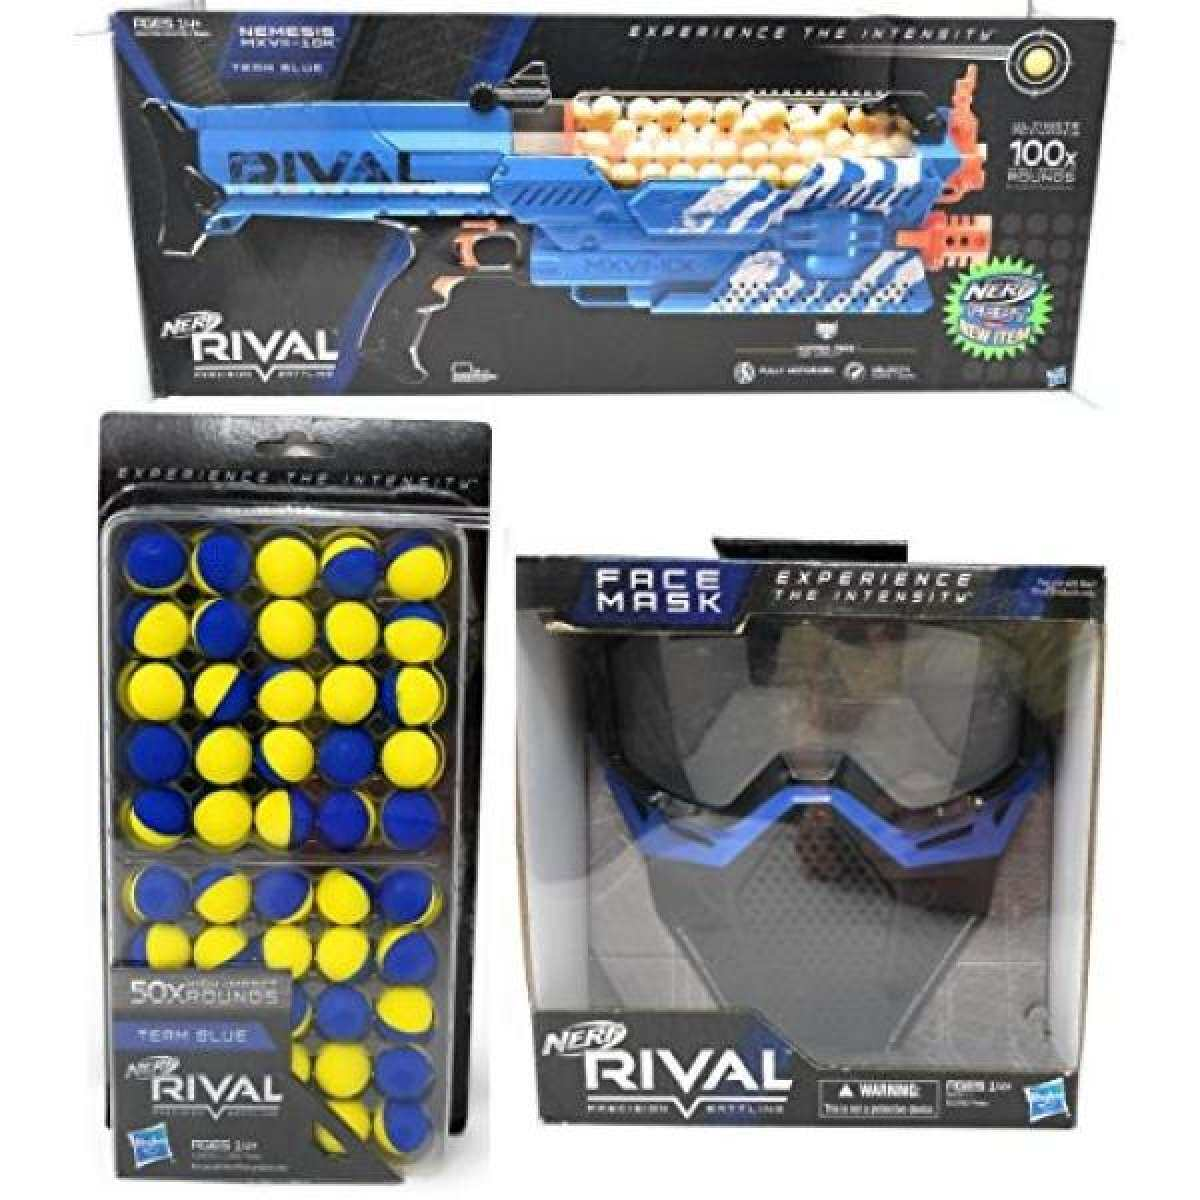 Nerf Rival Nemesis MXVII-10K, Face Mask, 50 Round Refill Pack Bundle (